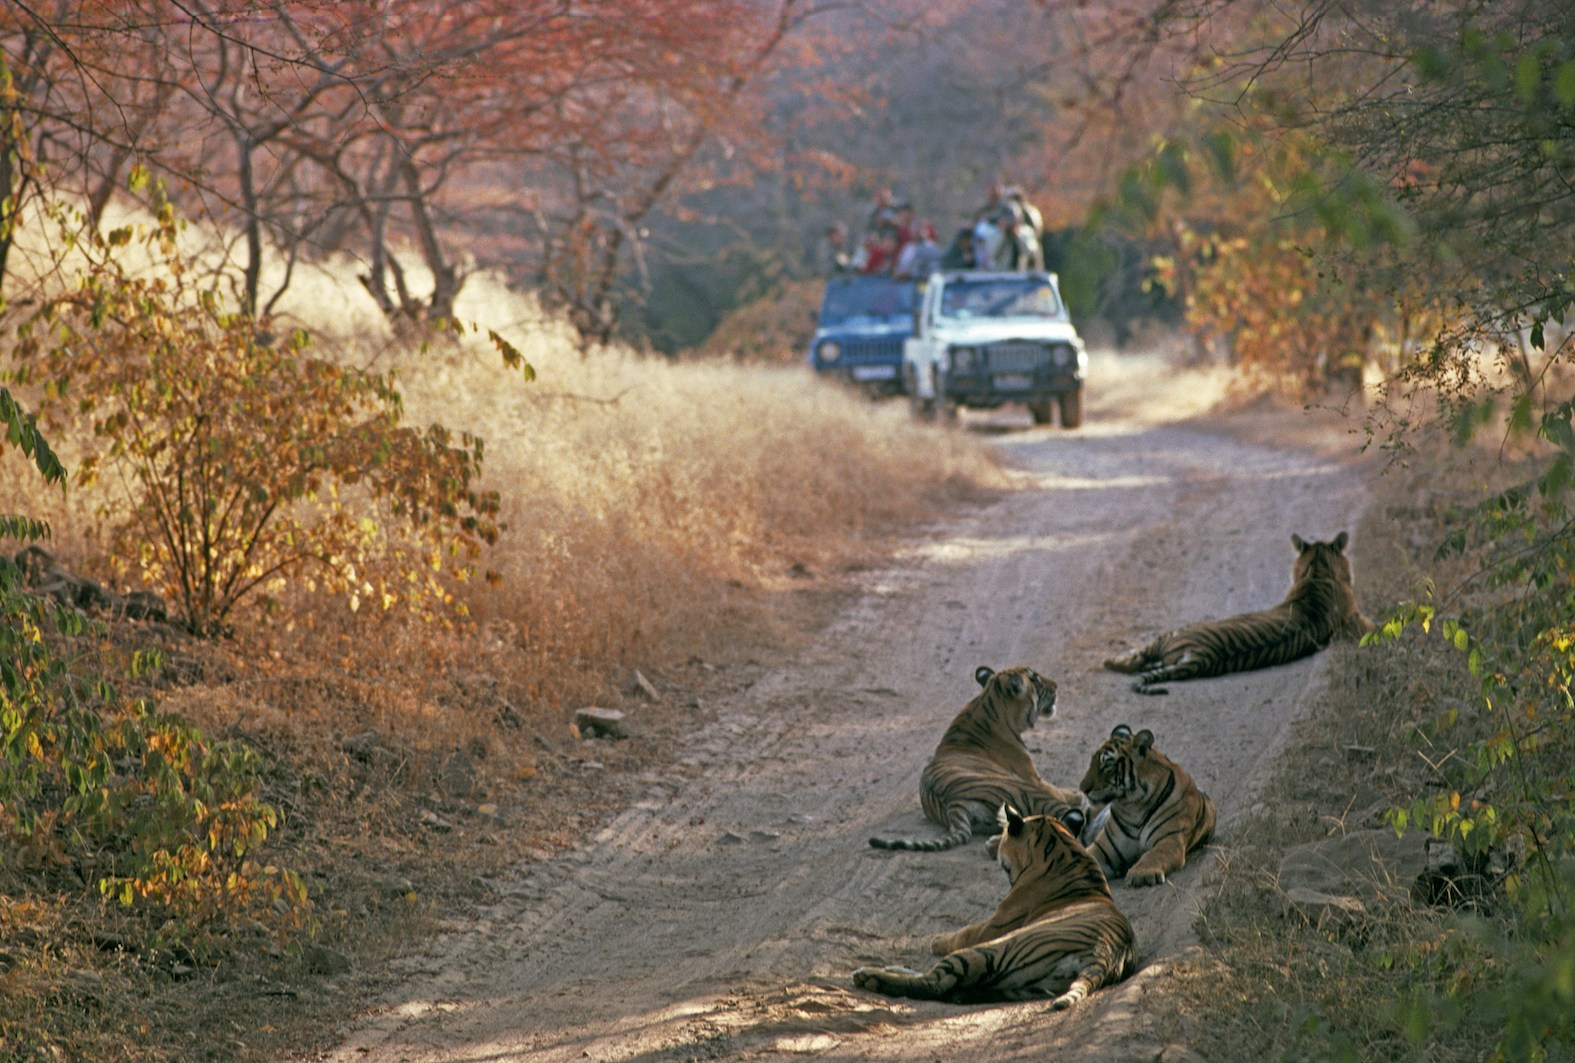 There are very few places to see tigers in the wild and world attention is focussed on a few premier tiger reserves (like Ranthambore above). We need 30-40 more places like this in India. Photo: Joanna Van Gruisen